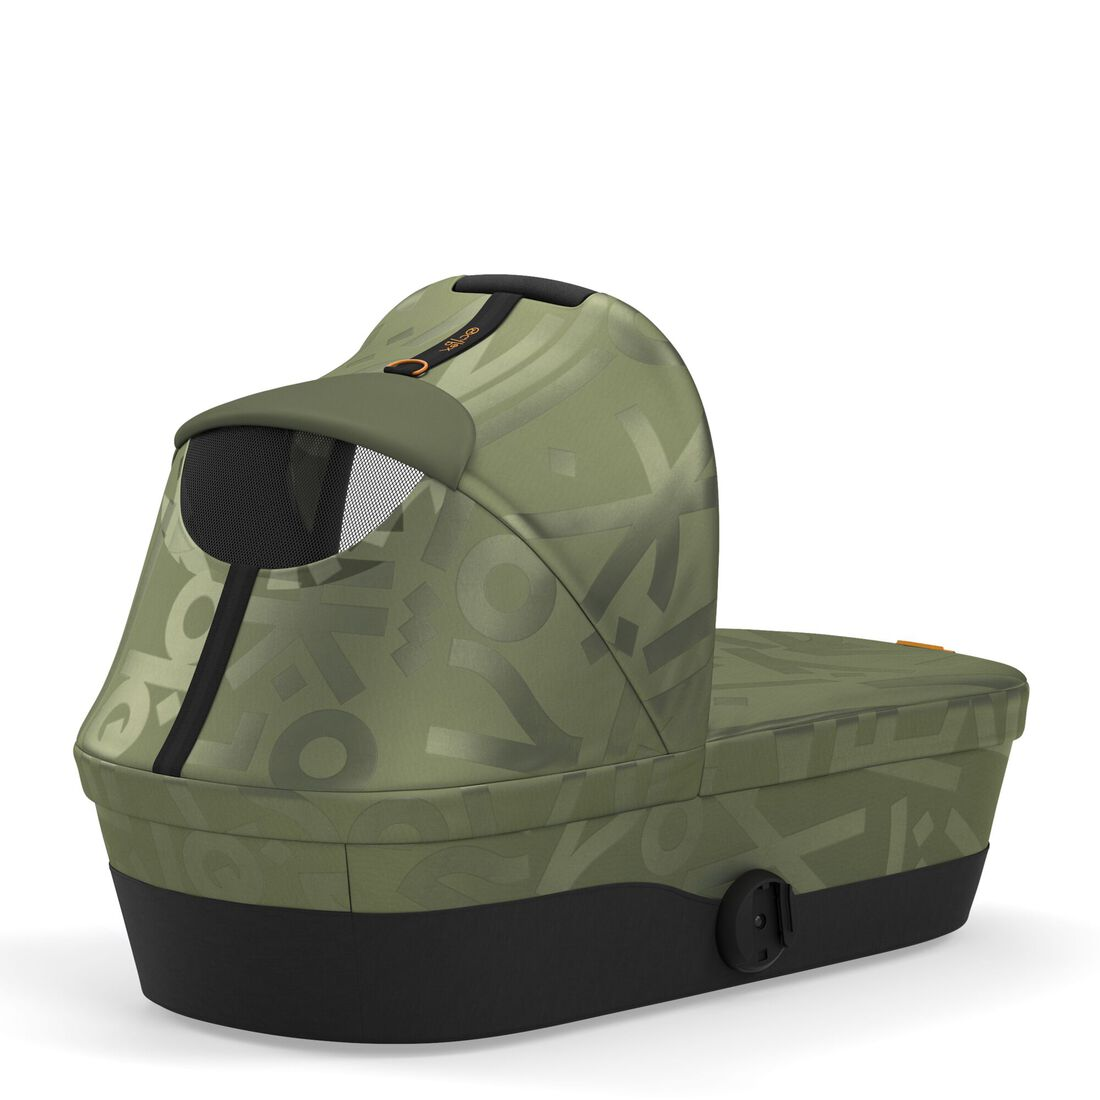 CYBEX Melio Cot - Olive Green in Olive Green large image number 5